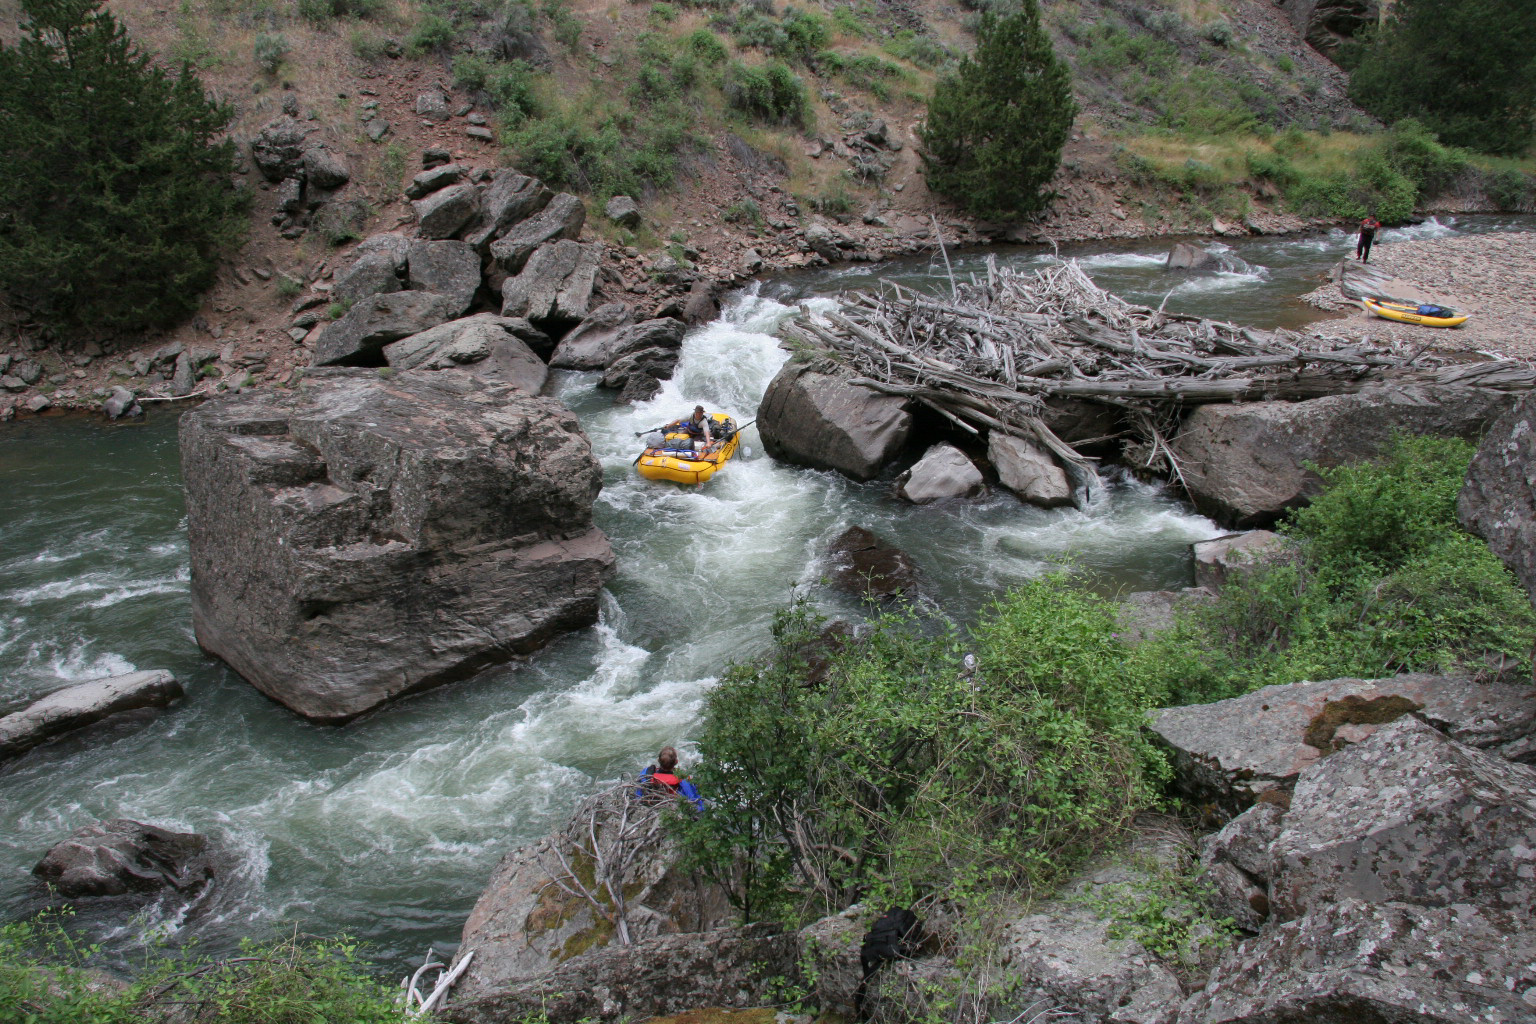 Sevy Falls Jarbidge Whitewater River Rafting